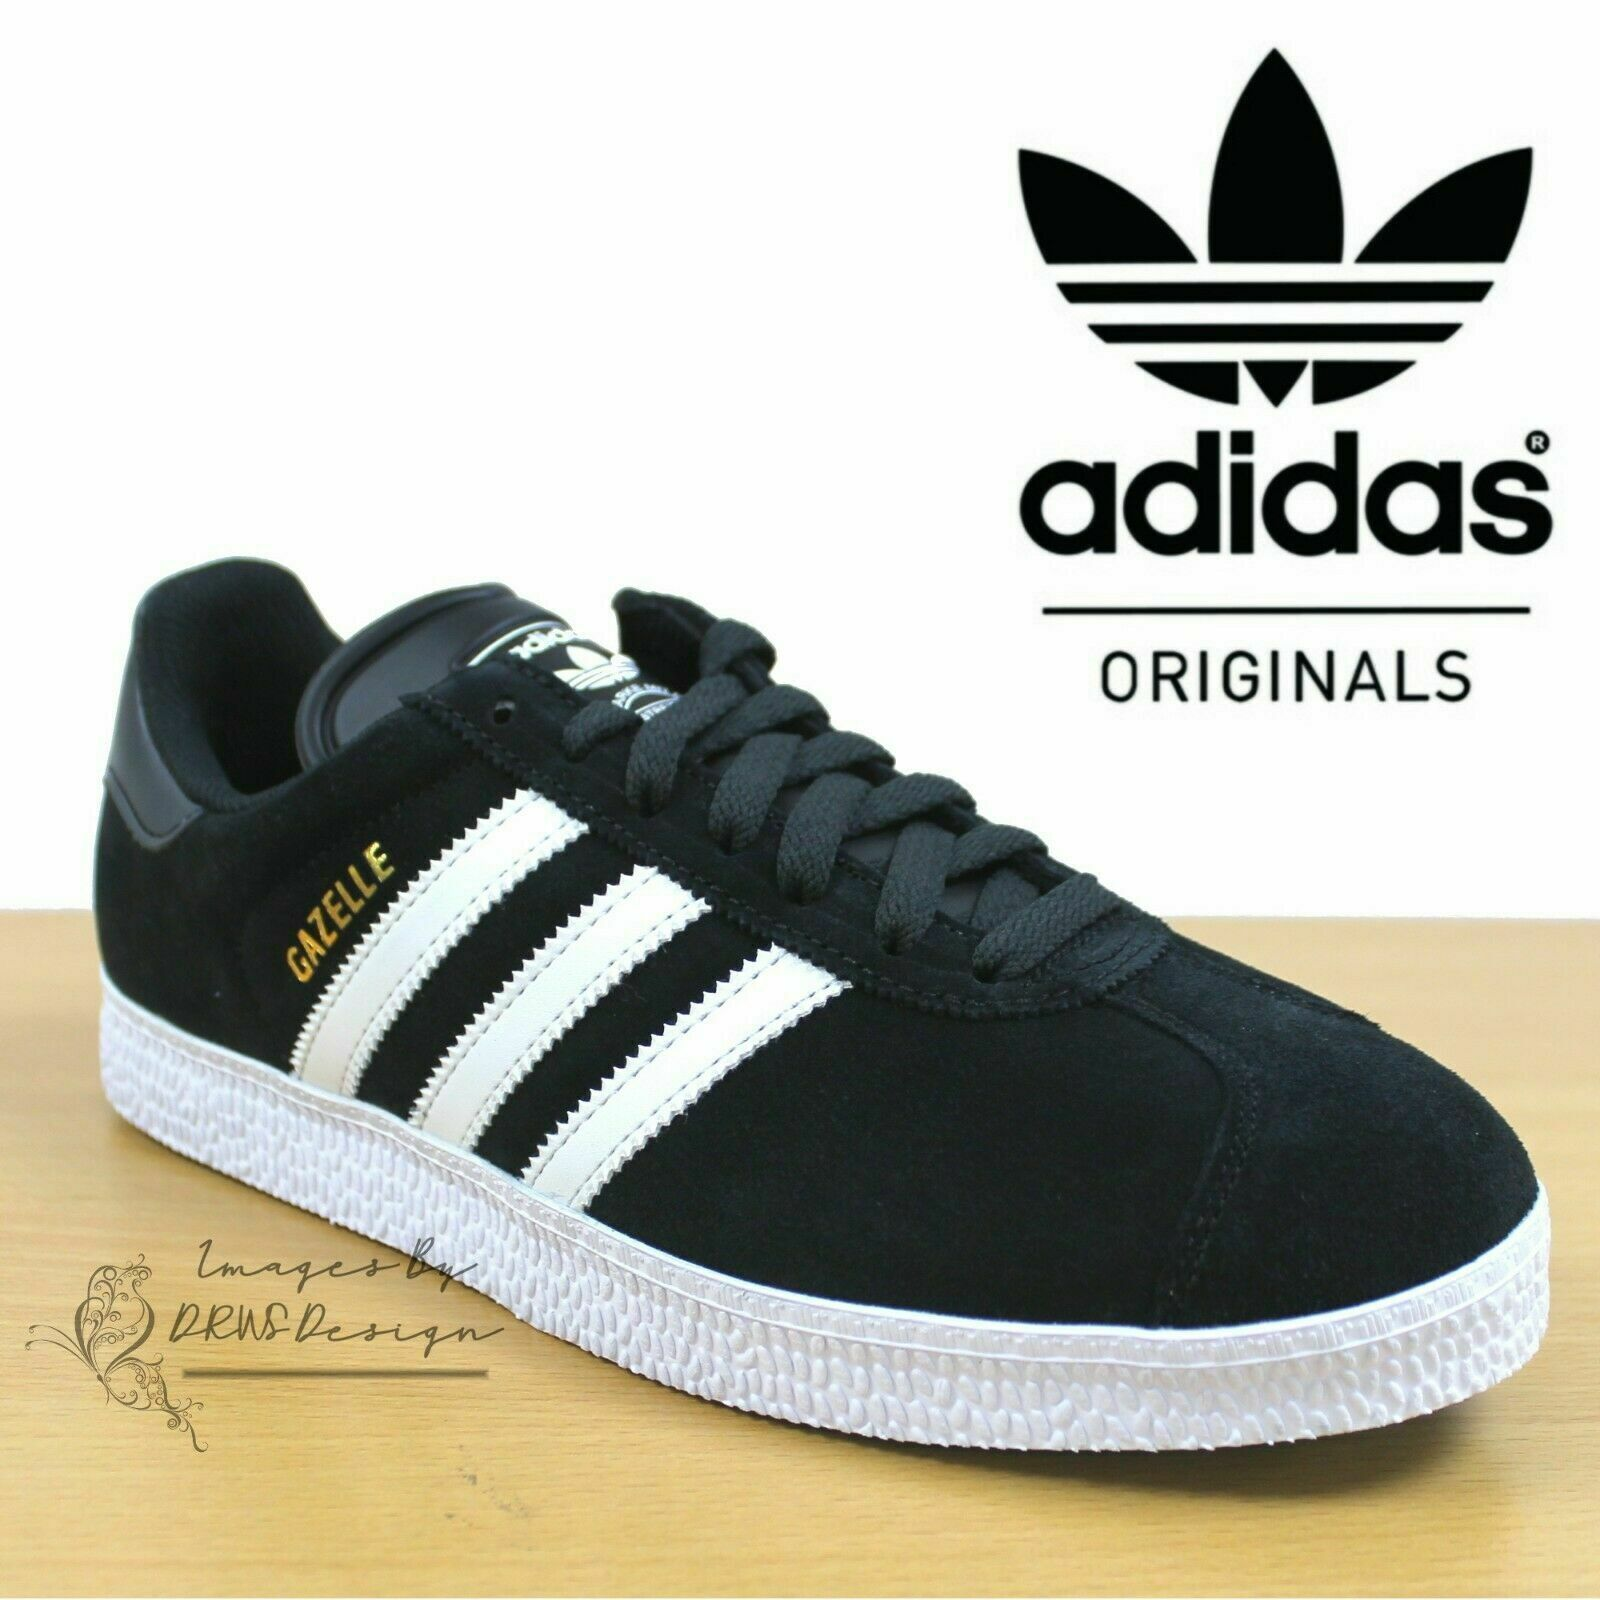 Adidas Originals GAZELLE II Mens Trainers Black Suede shoes  24Hr DELIVERY